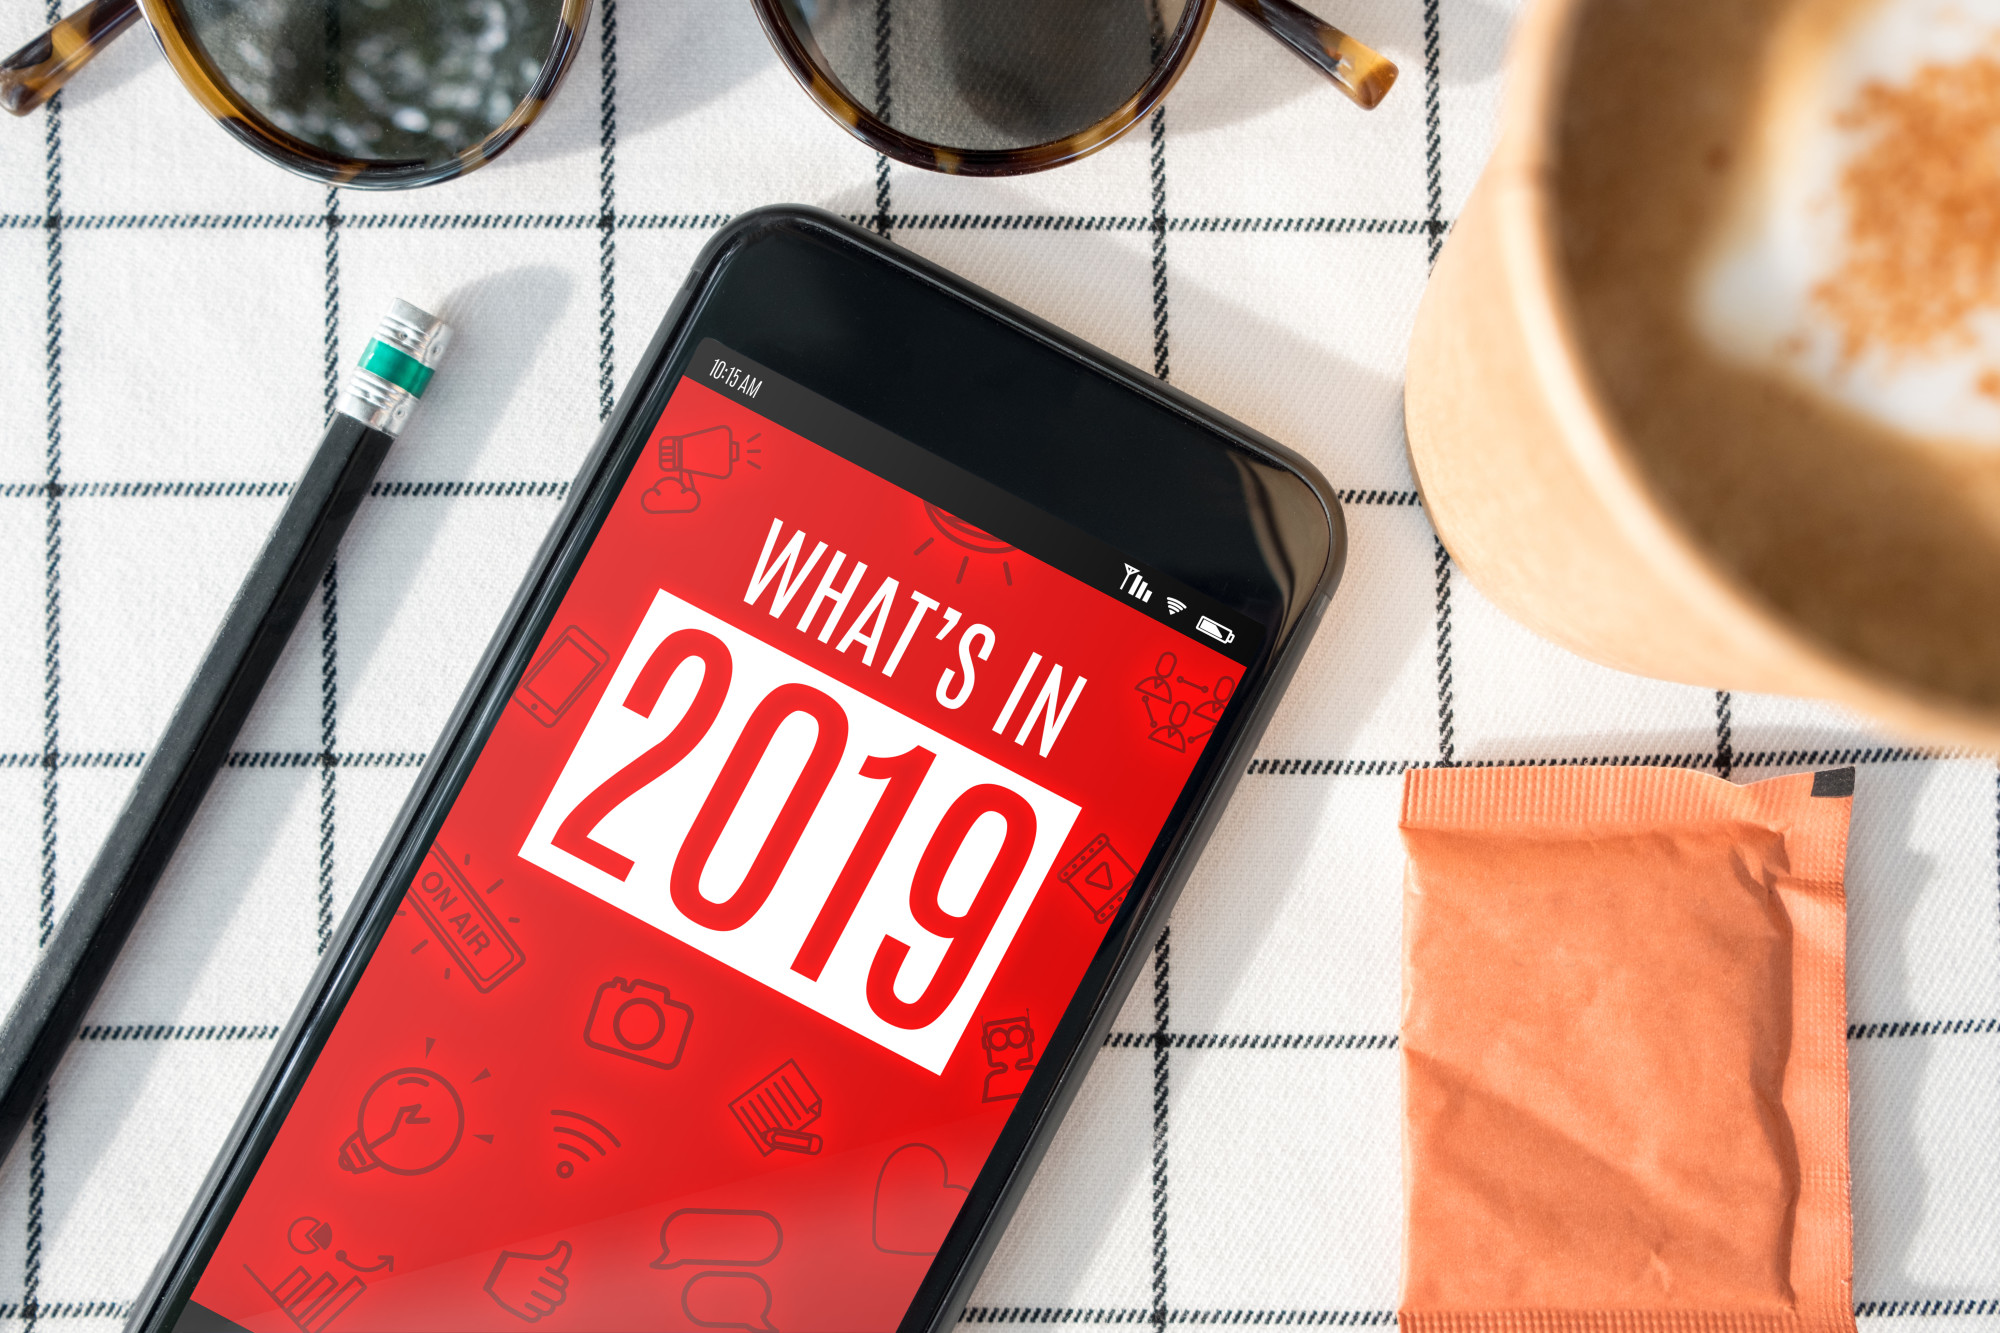 What's in 2019 on cell phone